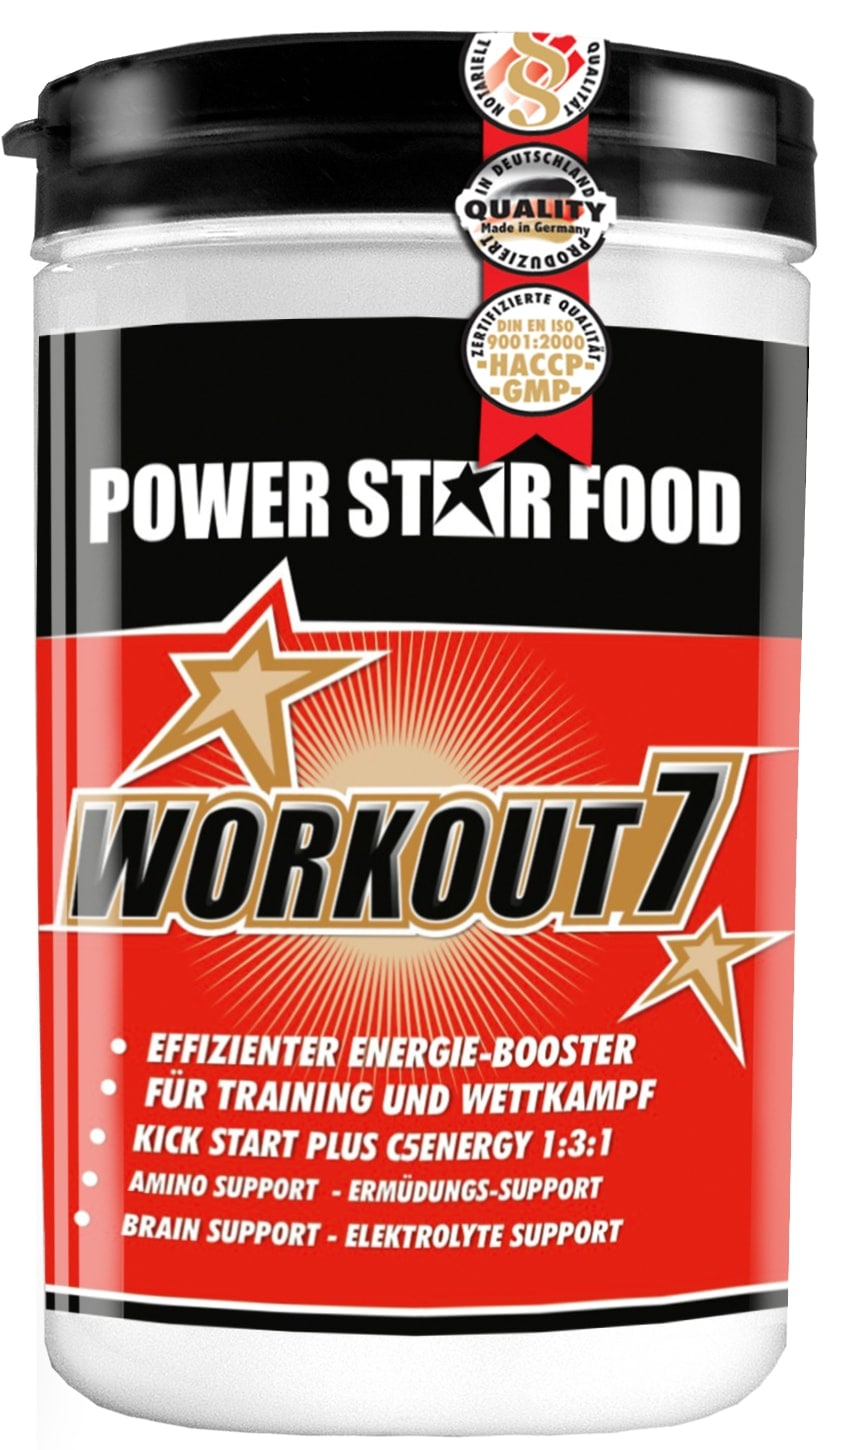 Booster Workout 7